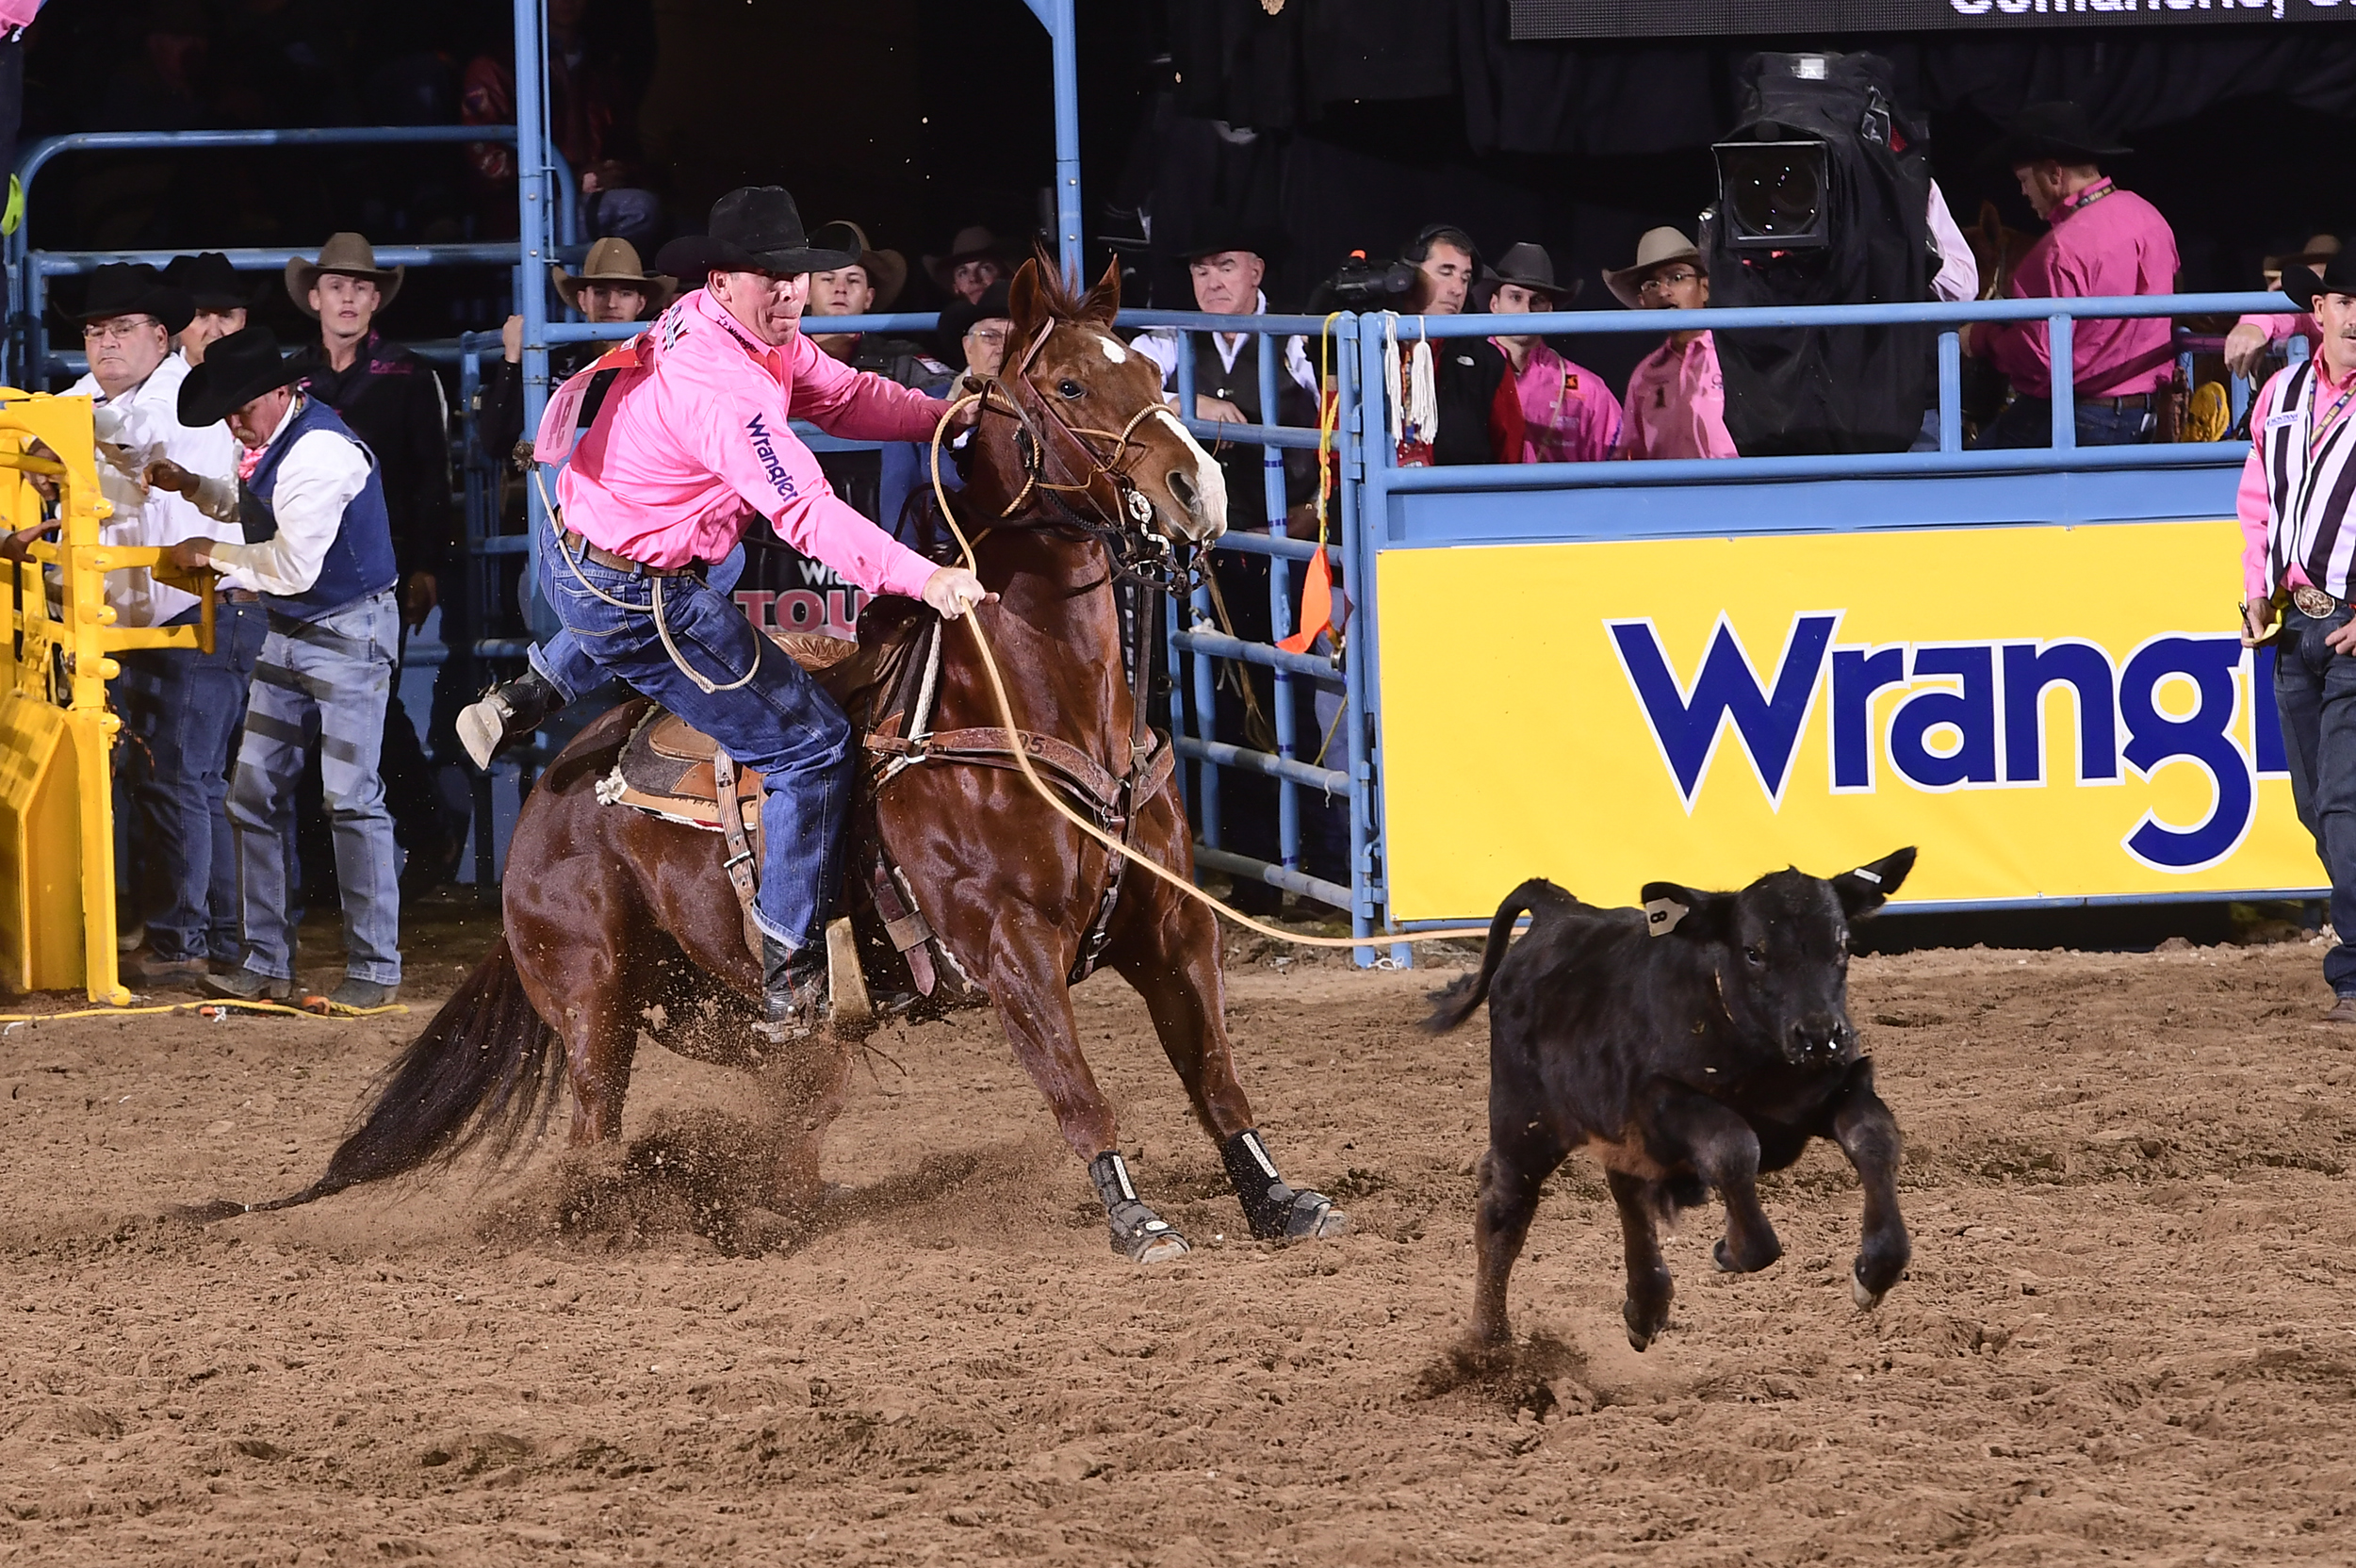 Ryan Jarrett found Lady Luck and rode her to a 7.5-second run on Monday to finish in a three-way tie for first place in the fifth go-round of the National Finals Rodeo. (PRCA PRORODEO PHOTO BY JAMES PHIFER)